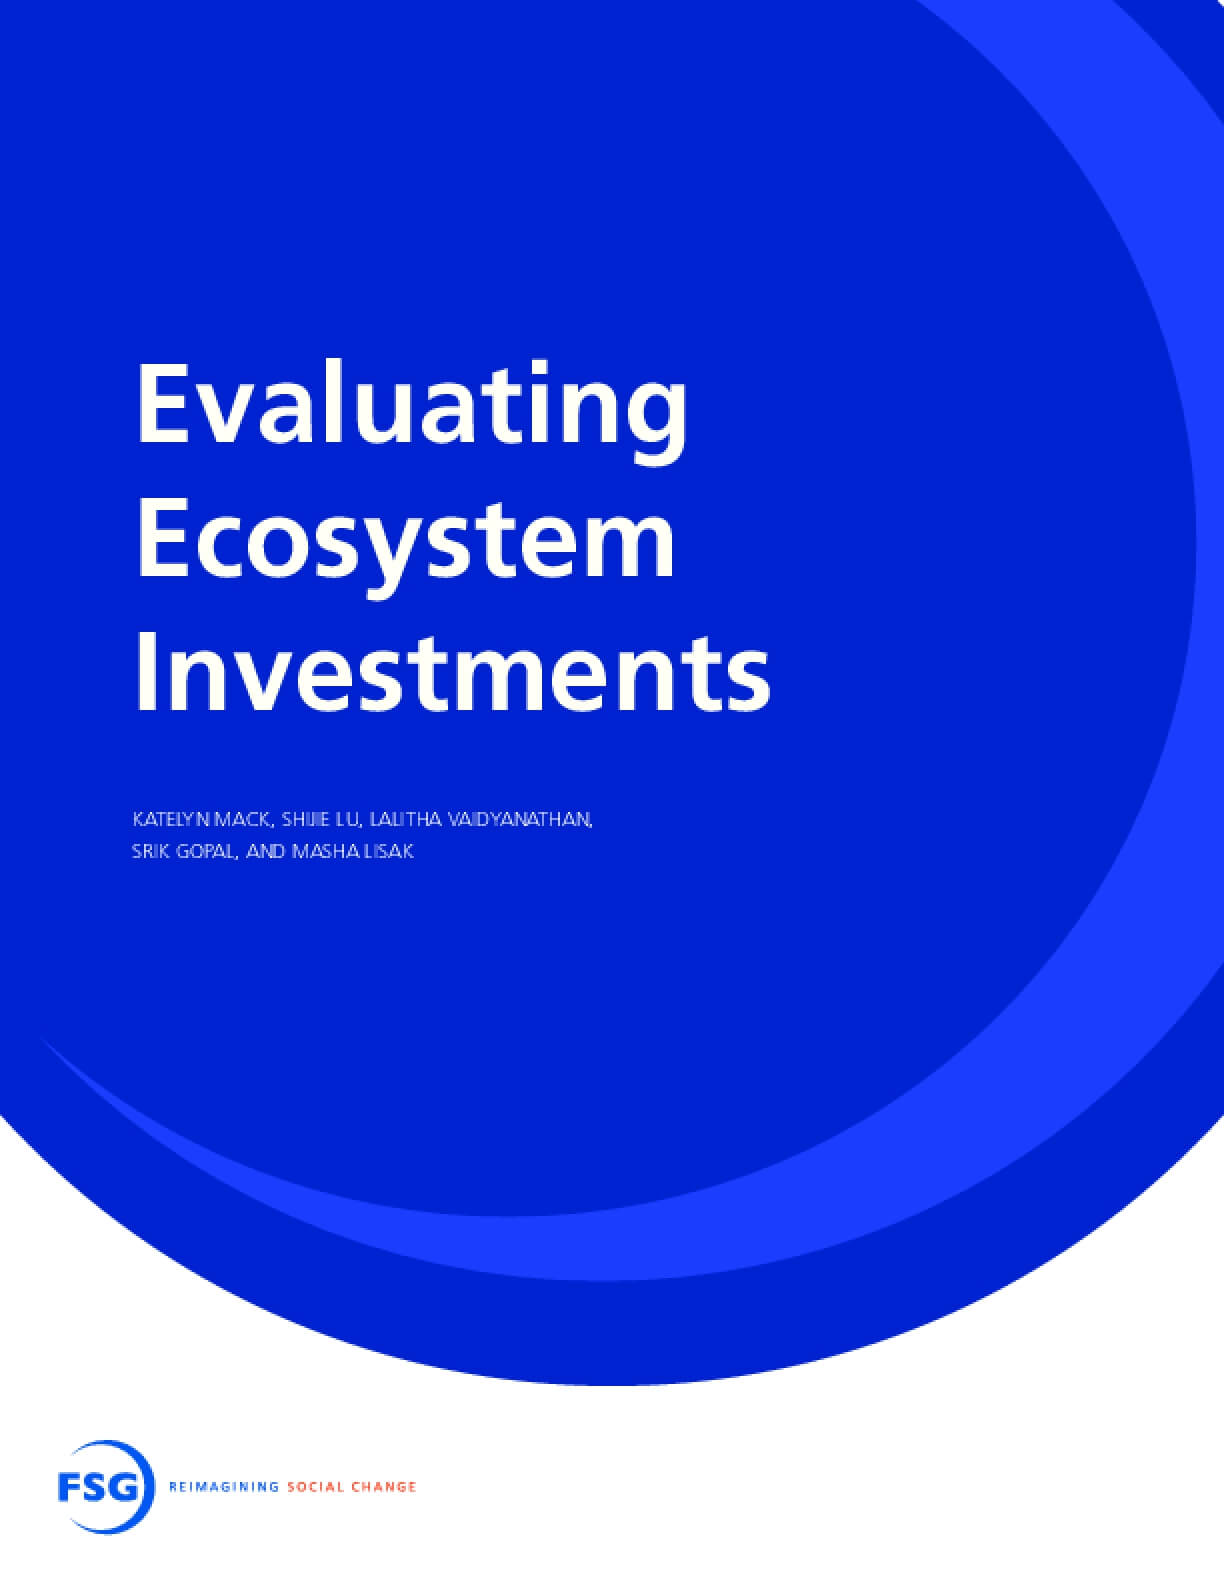 Evaluating Ecosystem Investments